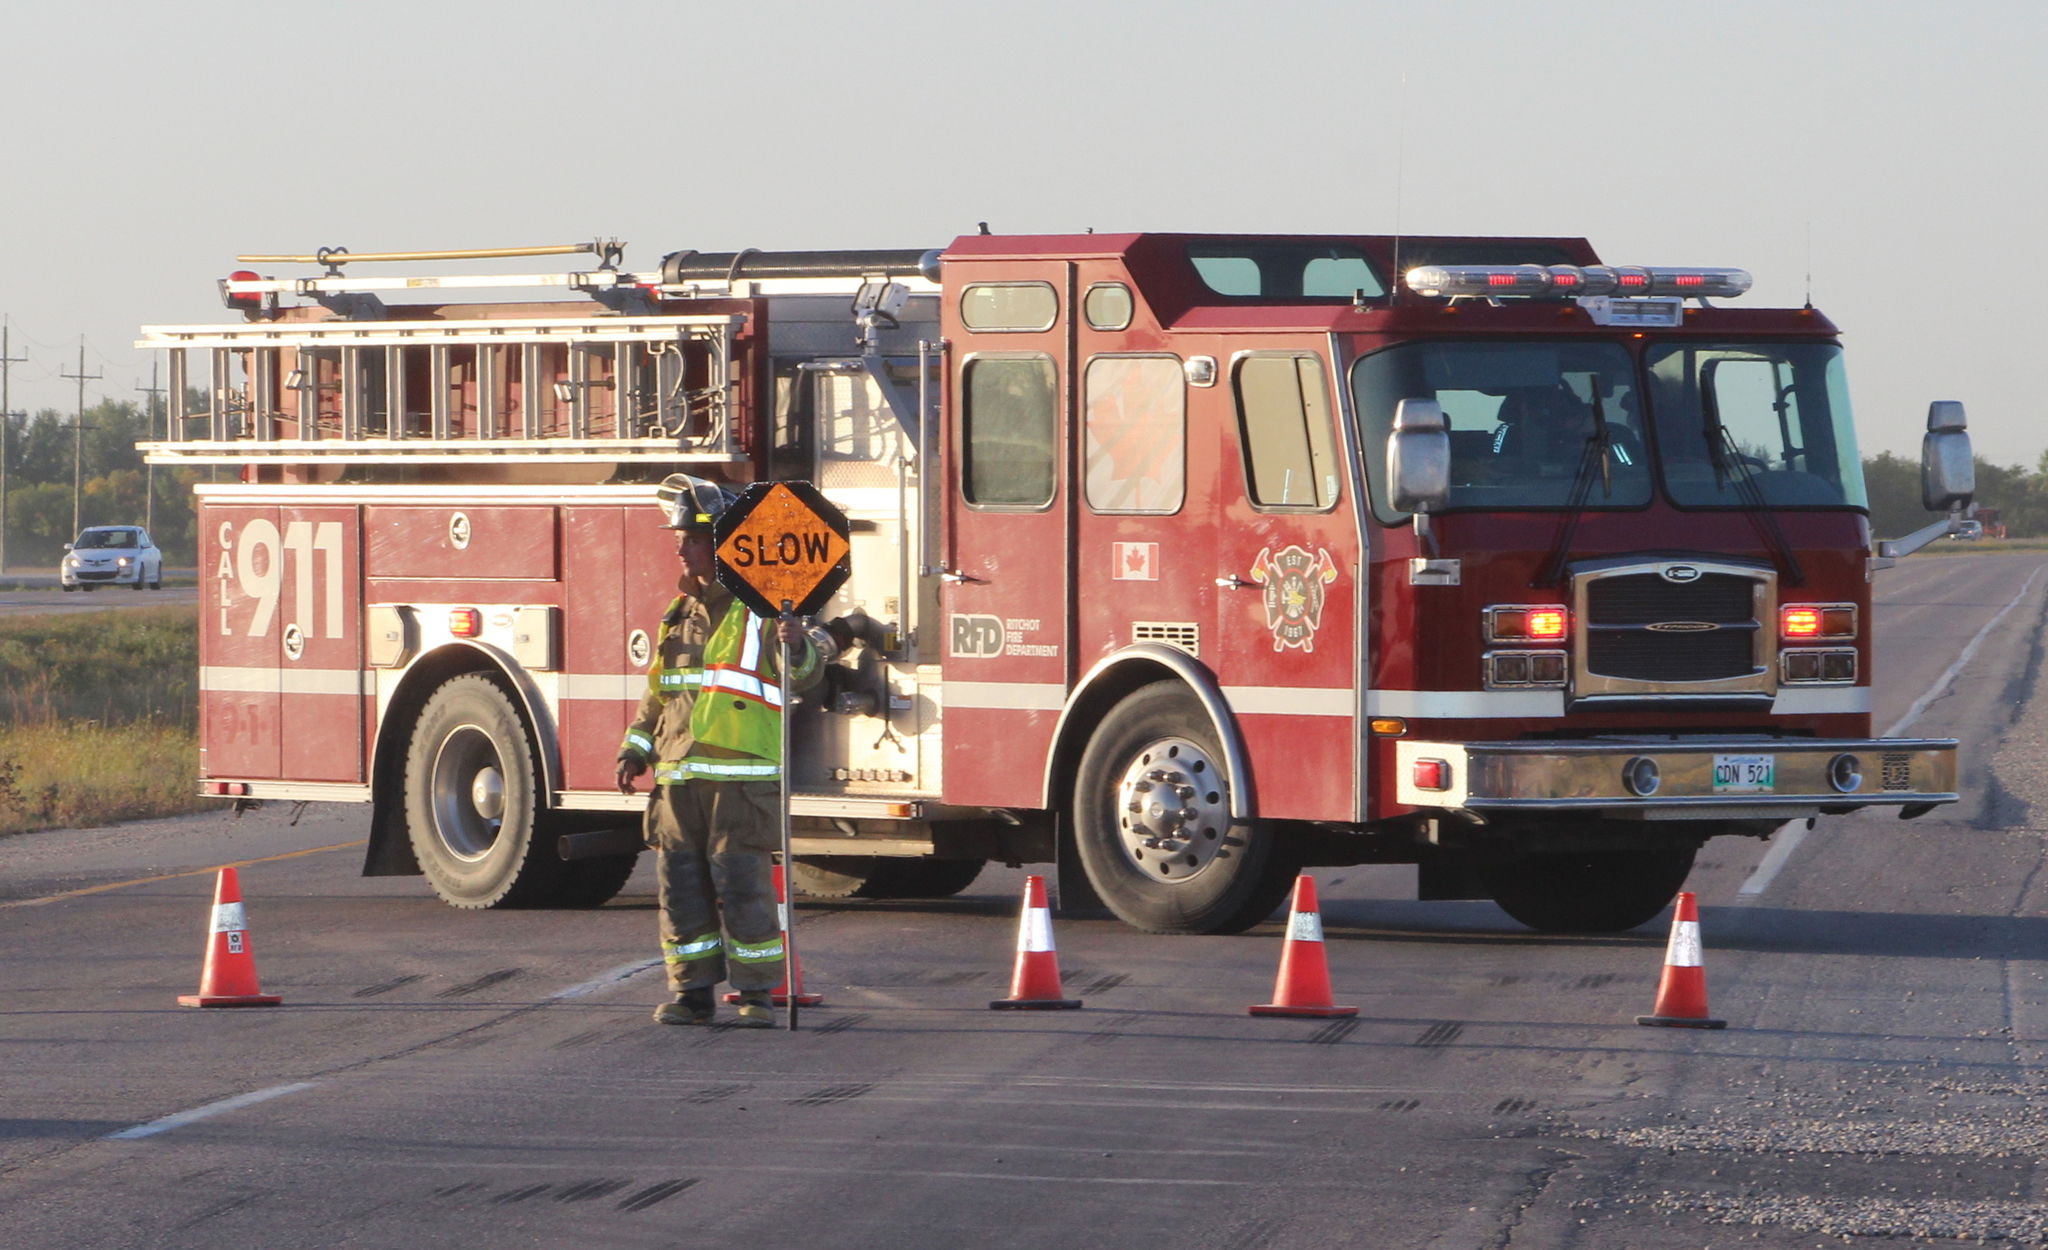 A member of the Ritchot Fire Department directs traffic on Highway 59 near Grande Pointe following a Thursday evening collision that left a 57-year-old cyclist dead.